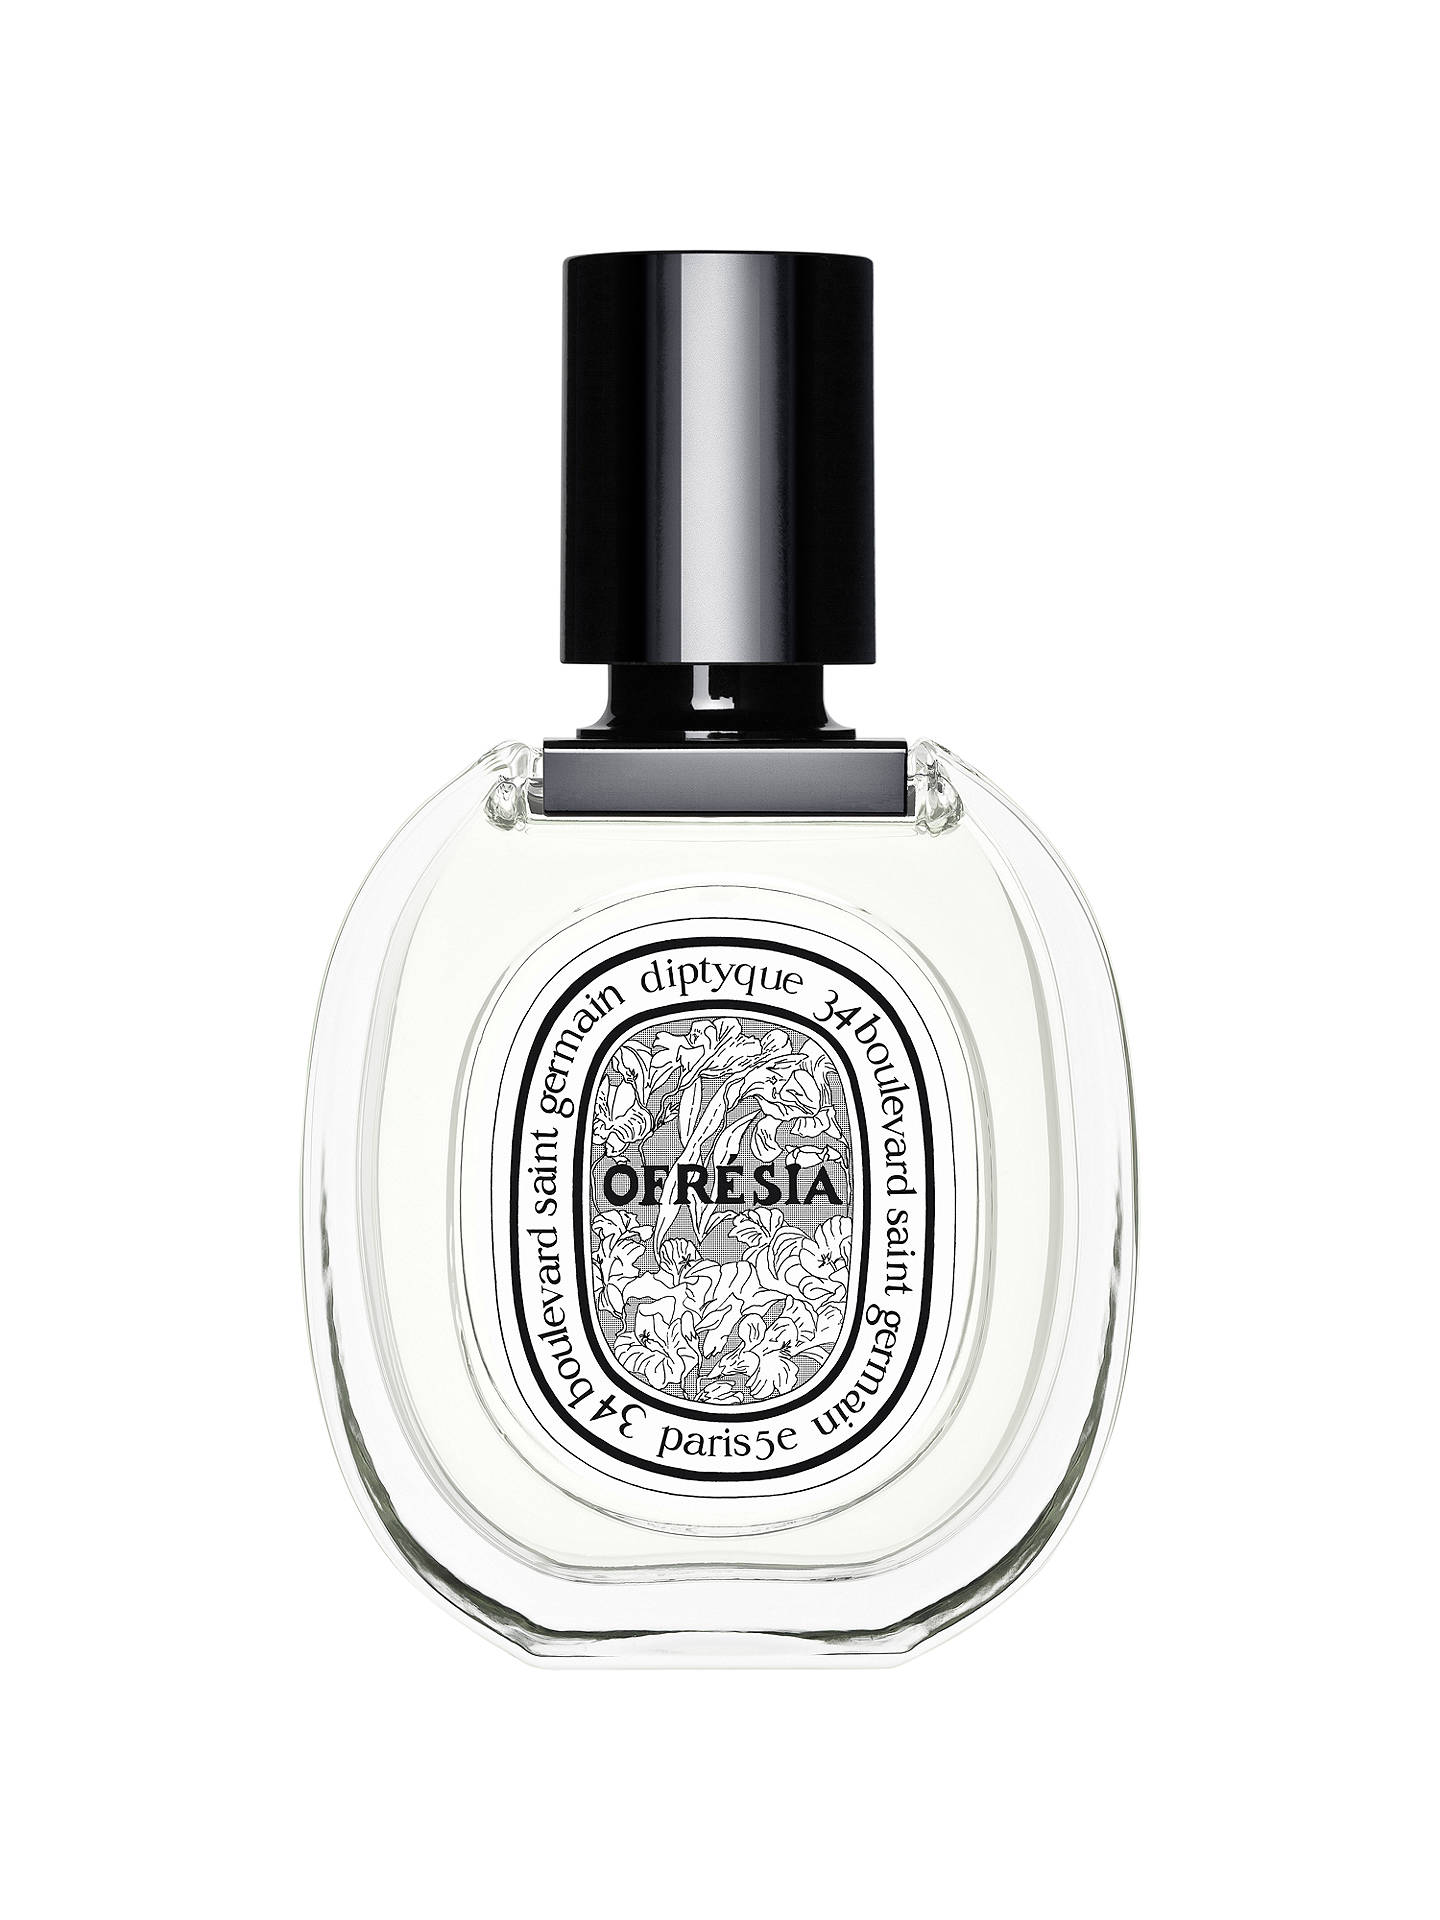 BuyDiptyque Ofrésia Eau de Toilette, 50ml Online at johnlewis.com